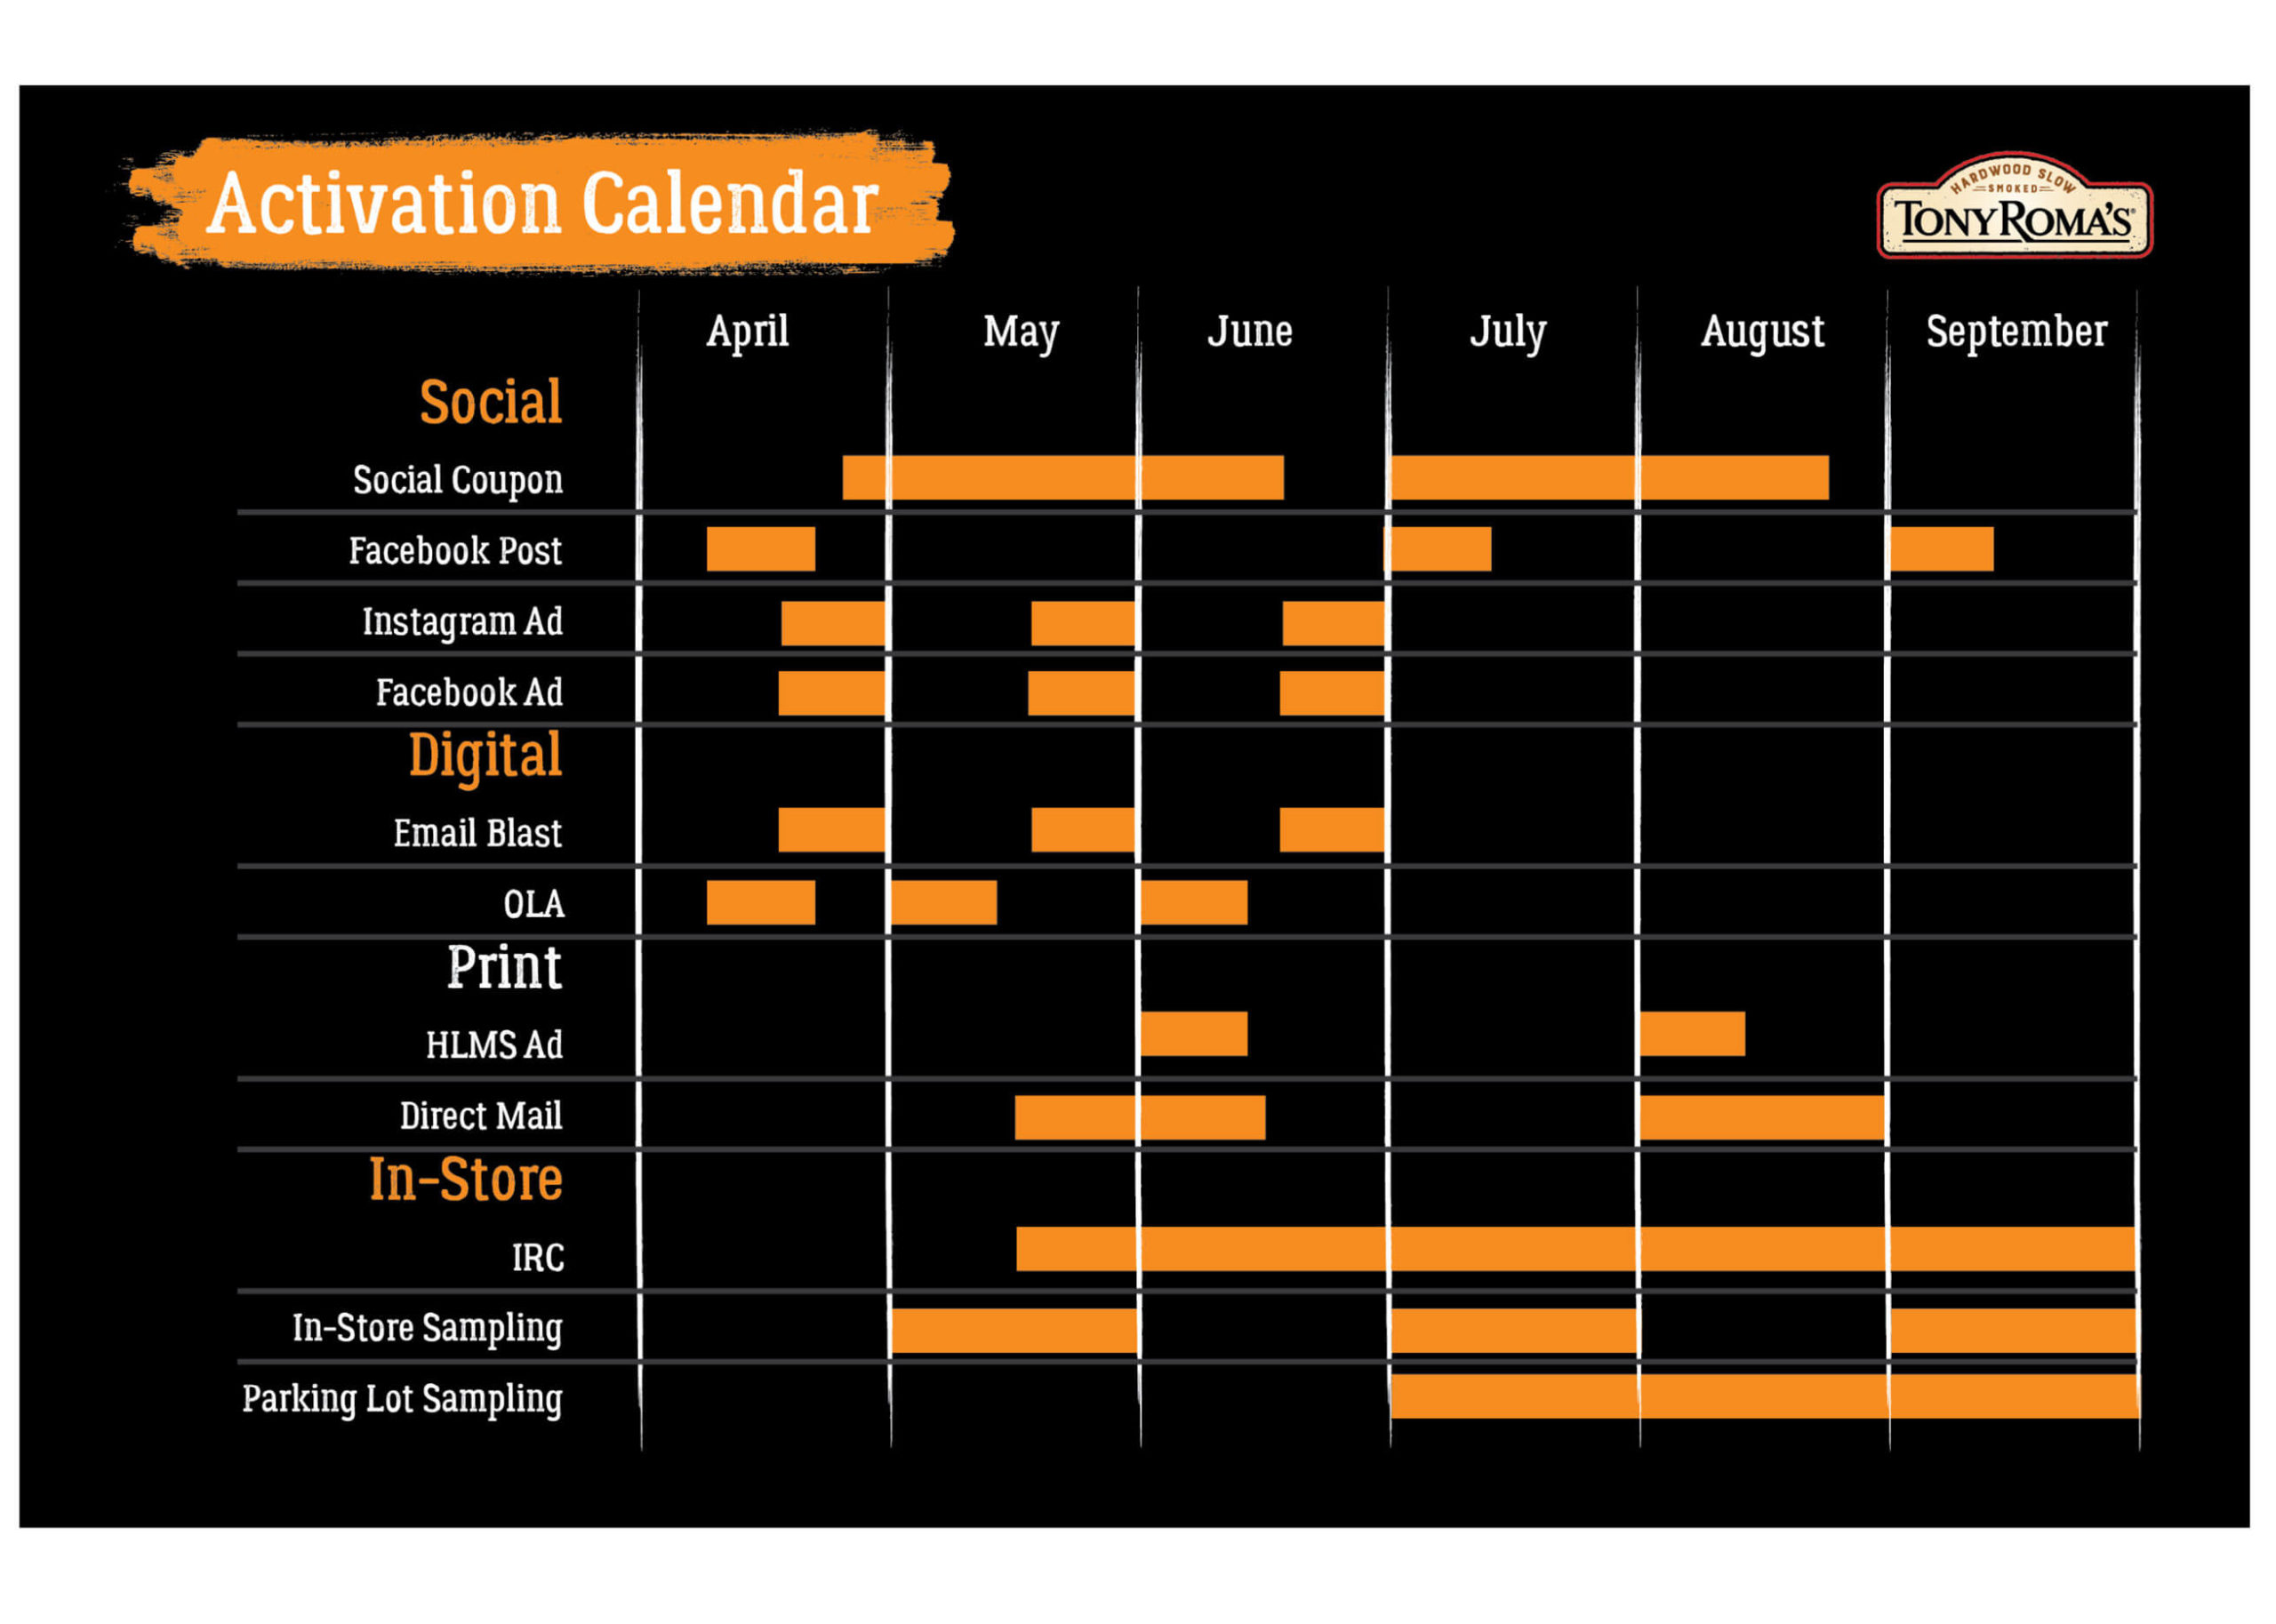 The full marketing campaign for Tony Roma's included a 6 month activation calendar